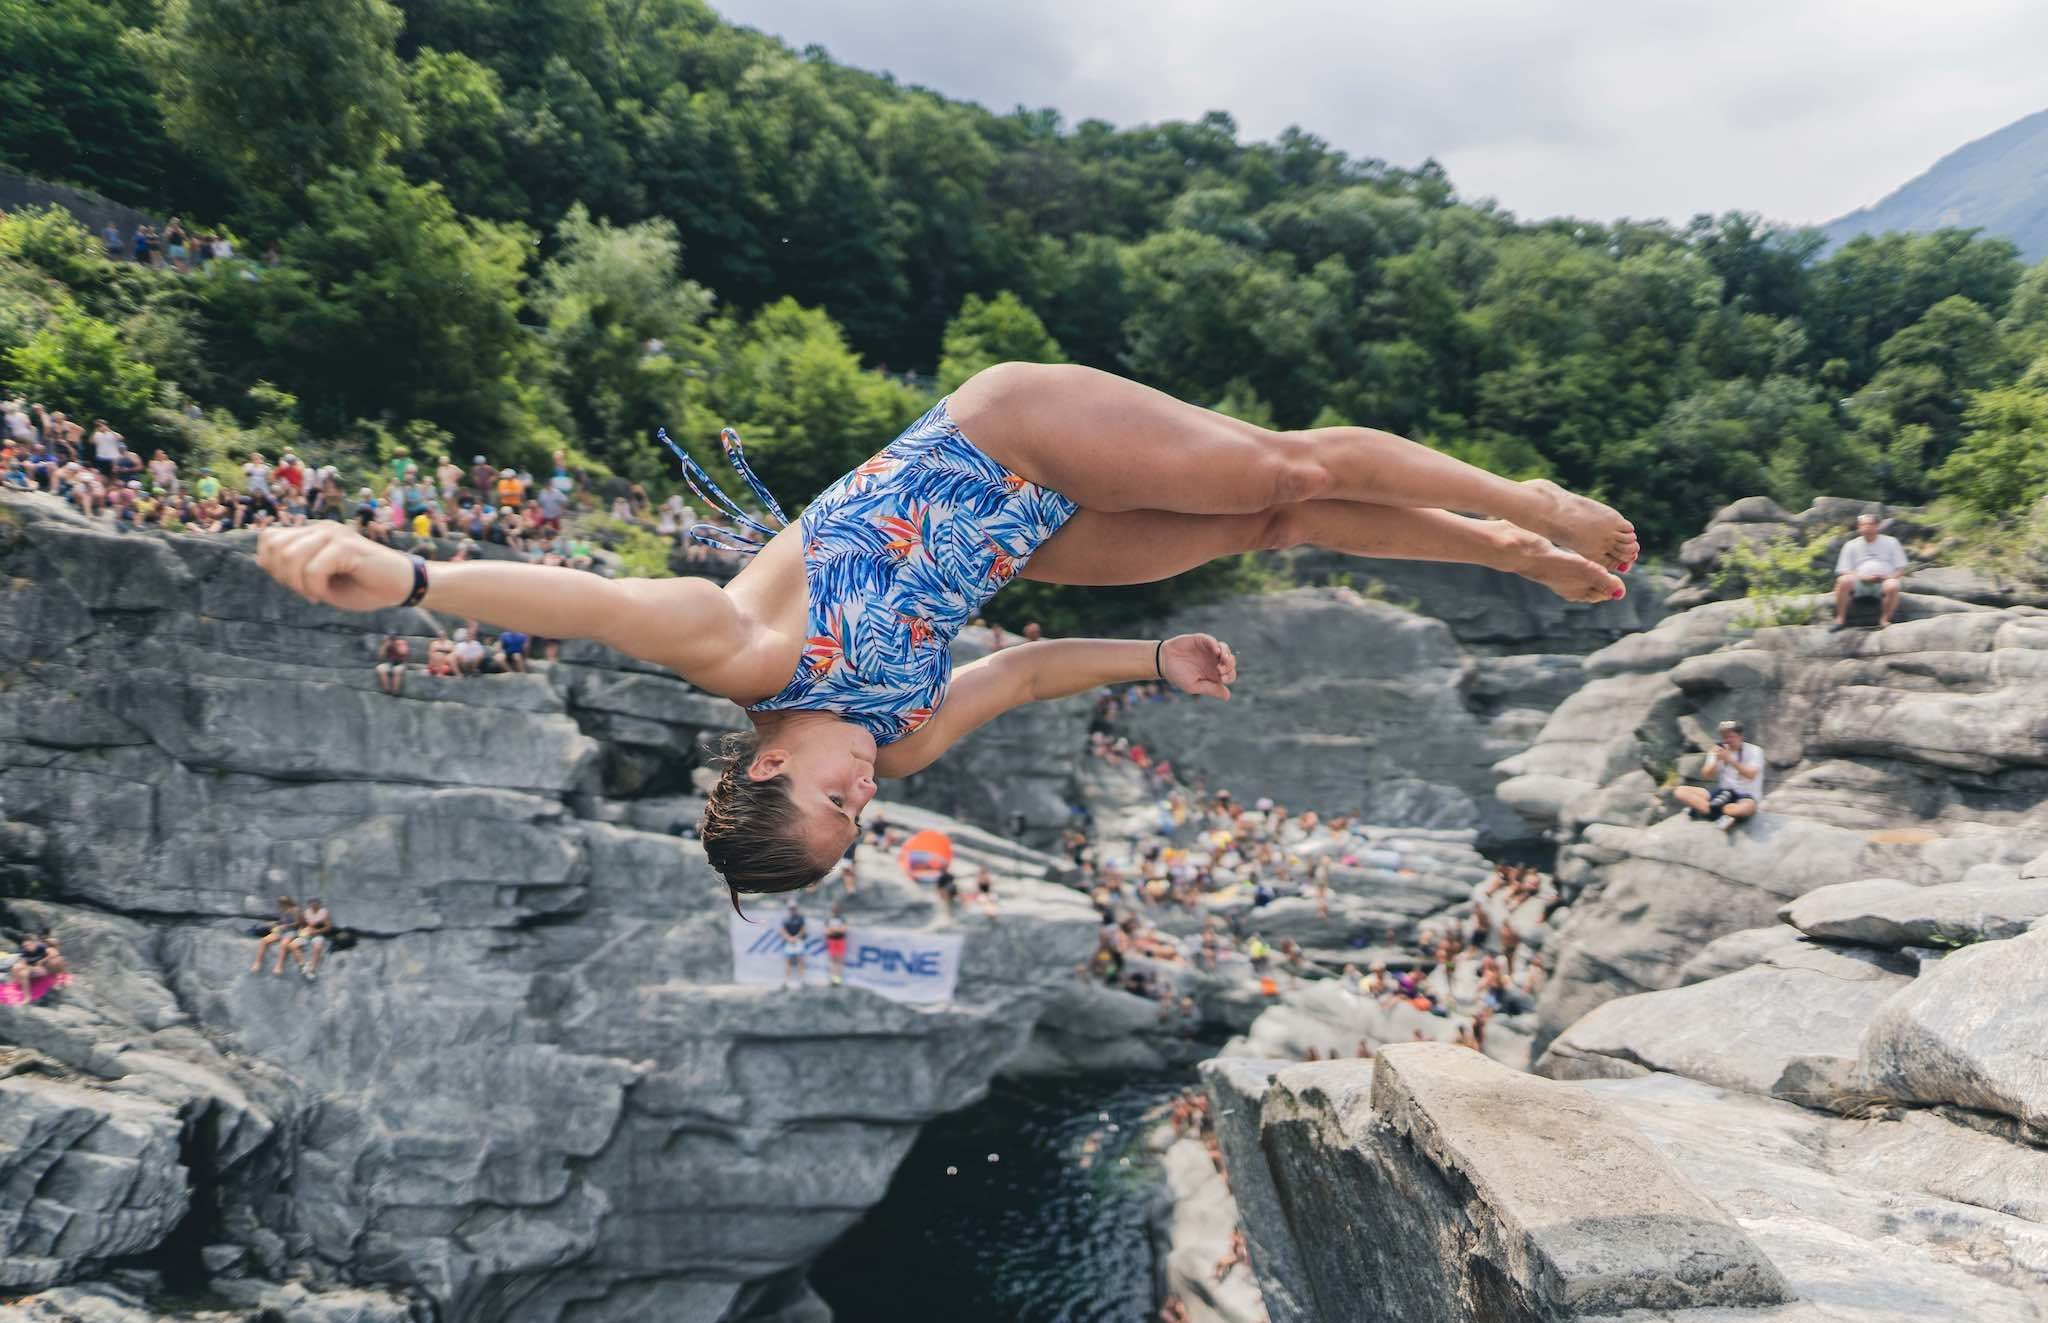 International Cliff Diving Championship 2020 – Cancelled!